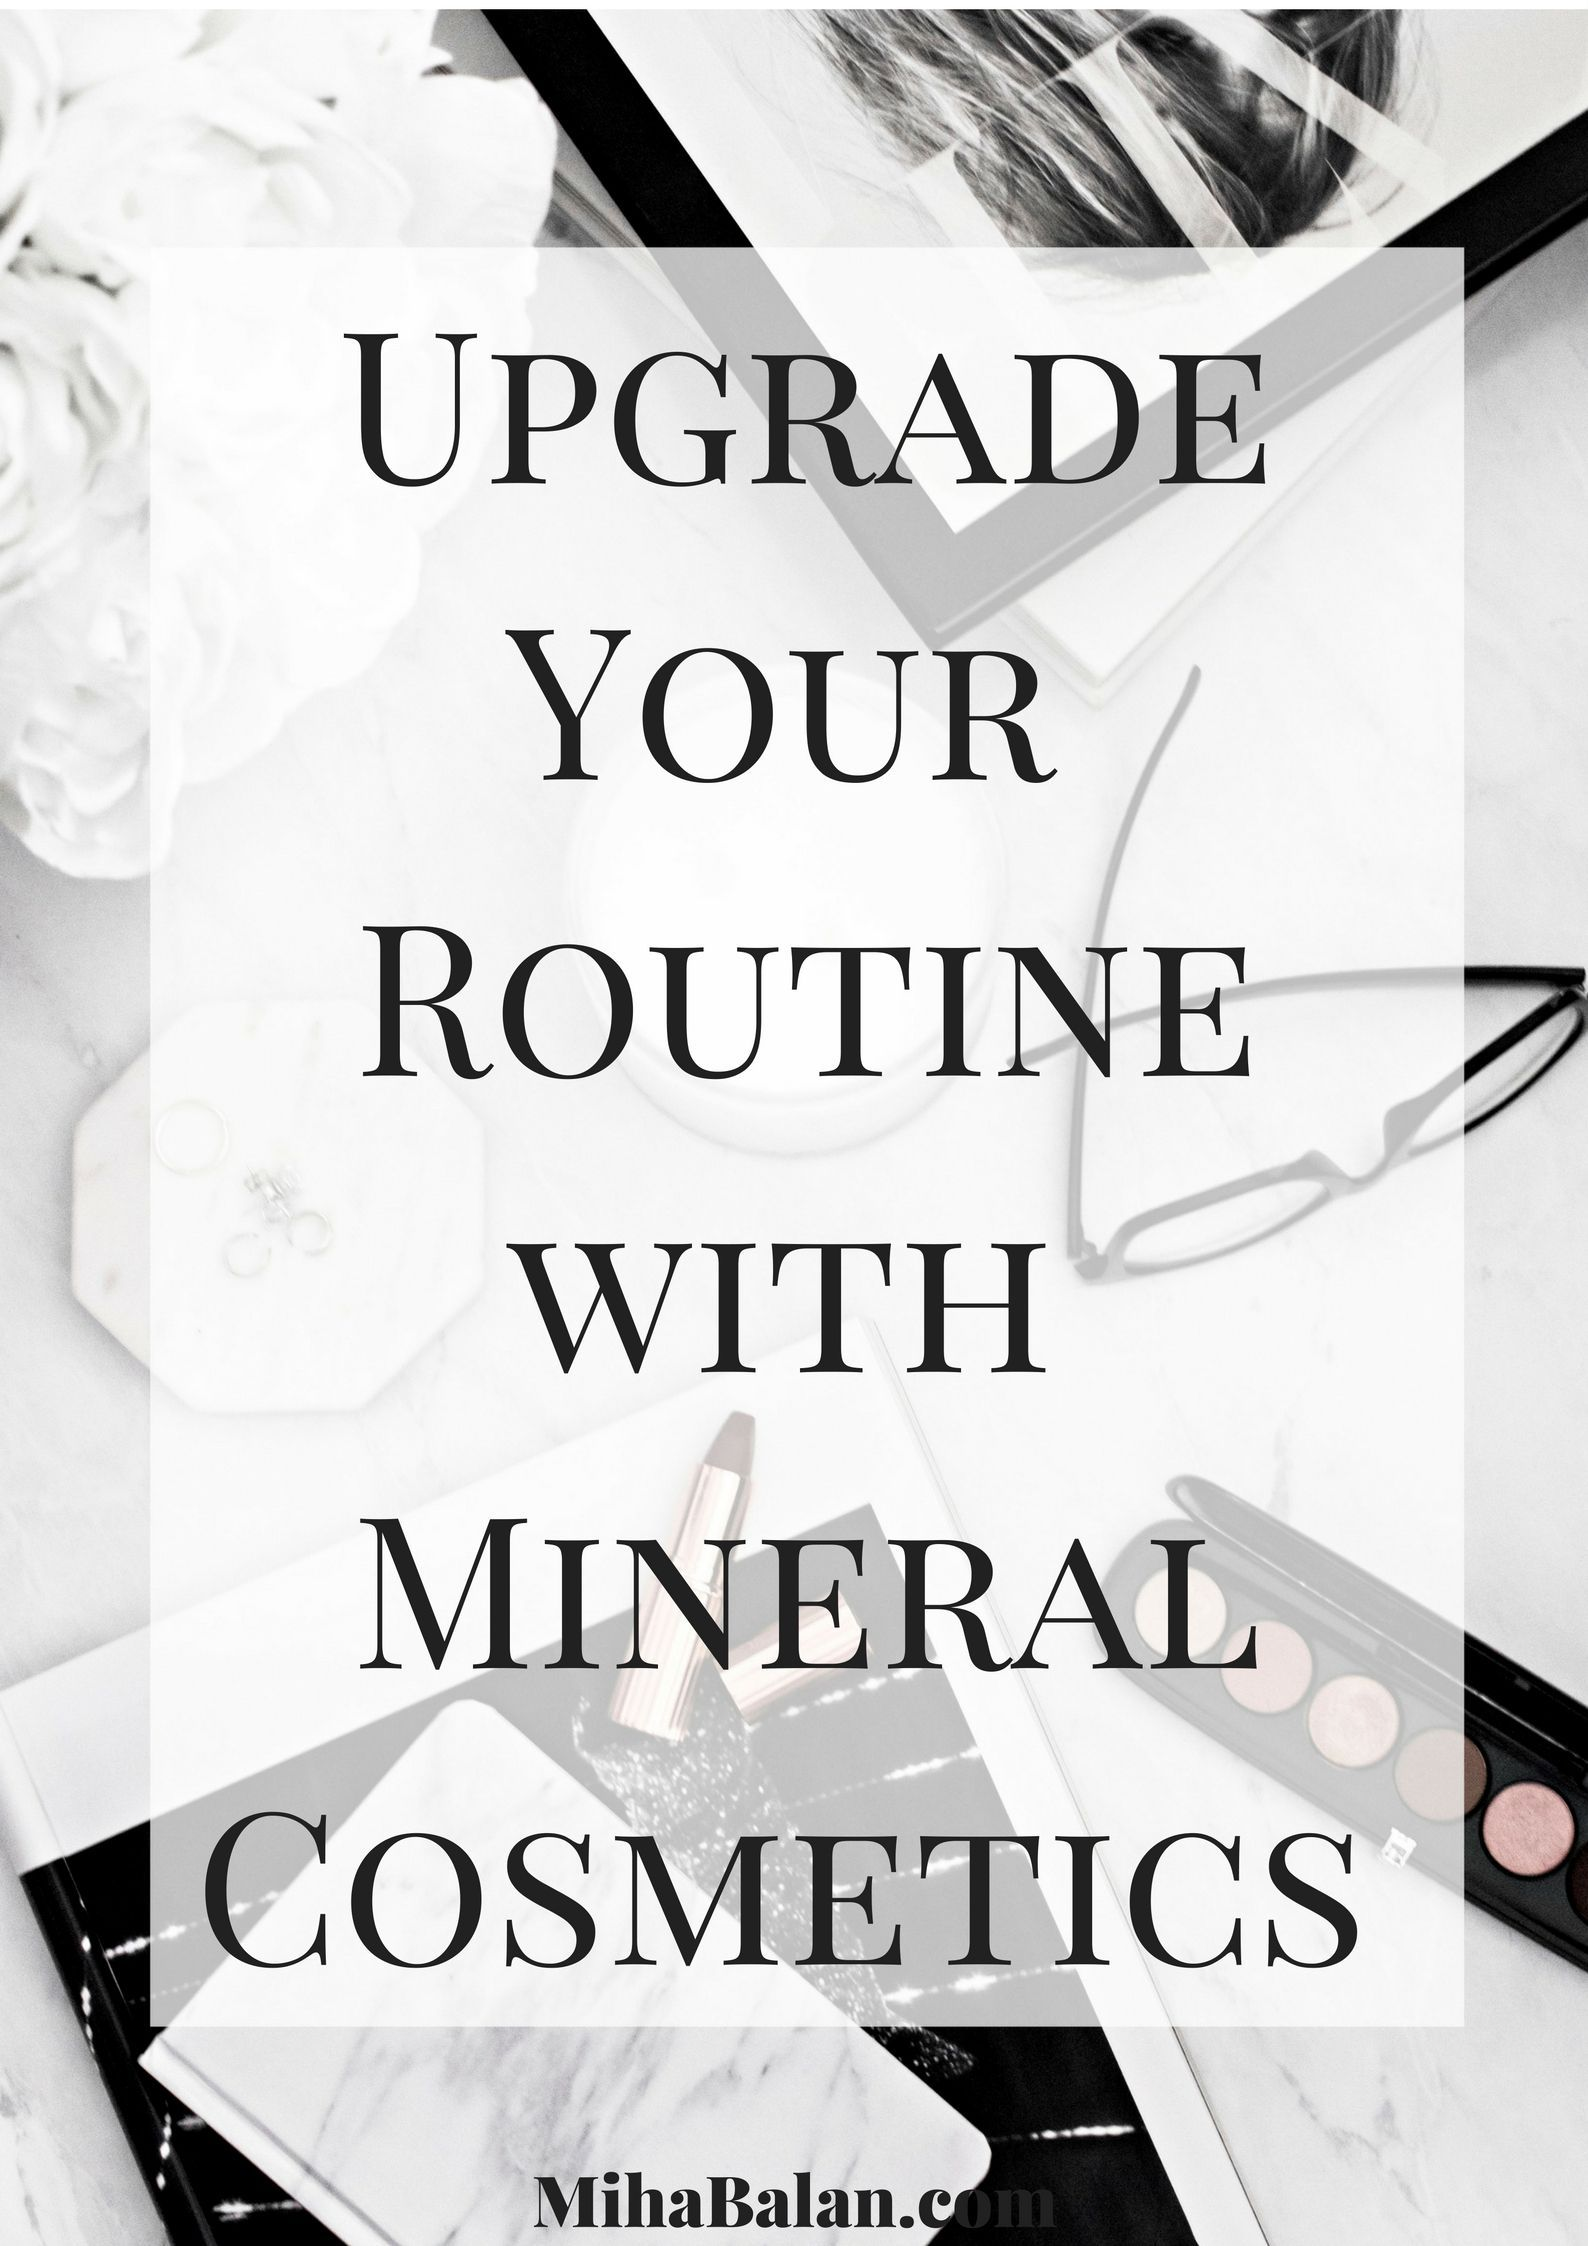 Upgrade Your Routine with Mineral Cosmetics #mineralcosmetics Have you ever considered how the makeup you are buying affects your skin? Did you knew that some of the cosmetics on the market can contain toxins or preservatives? I personally didn't, until I read the importance of mineral makeup and why is it a good idea to consider changing my beauty routine #mineralcosmetics